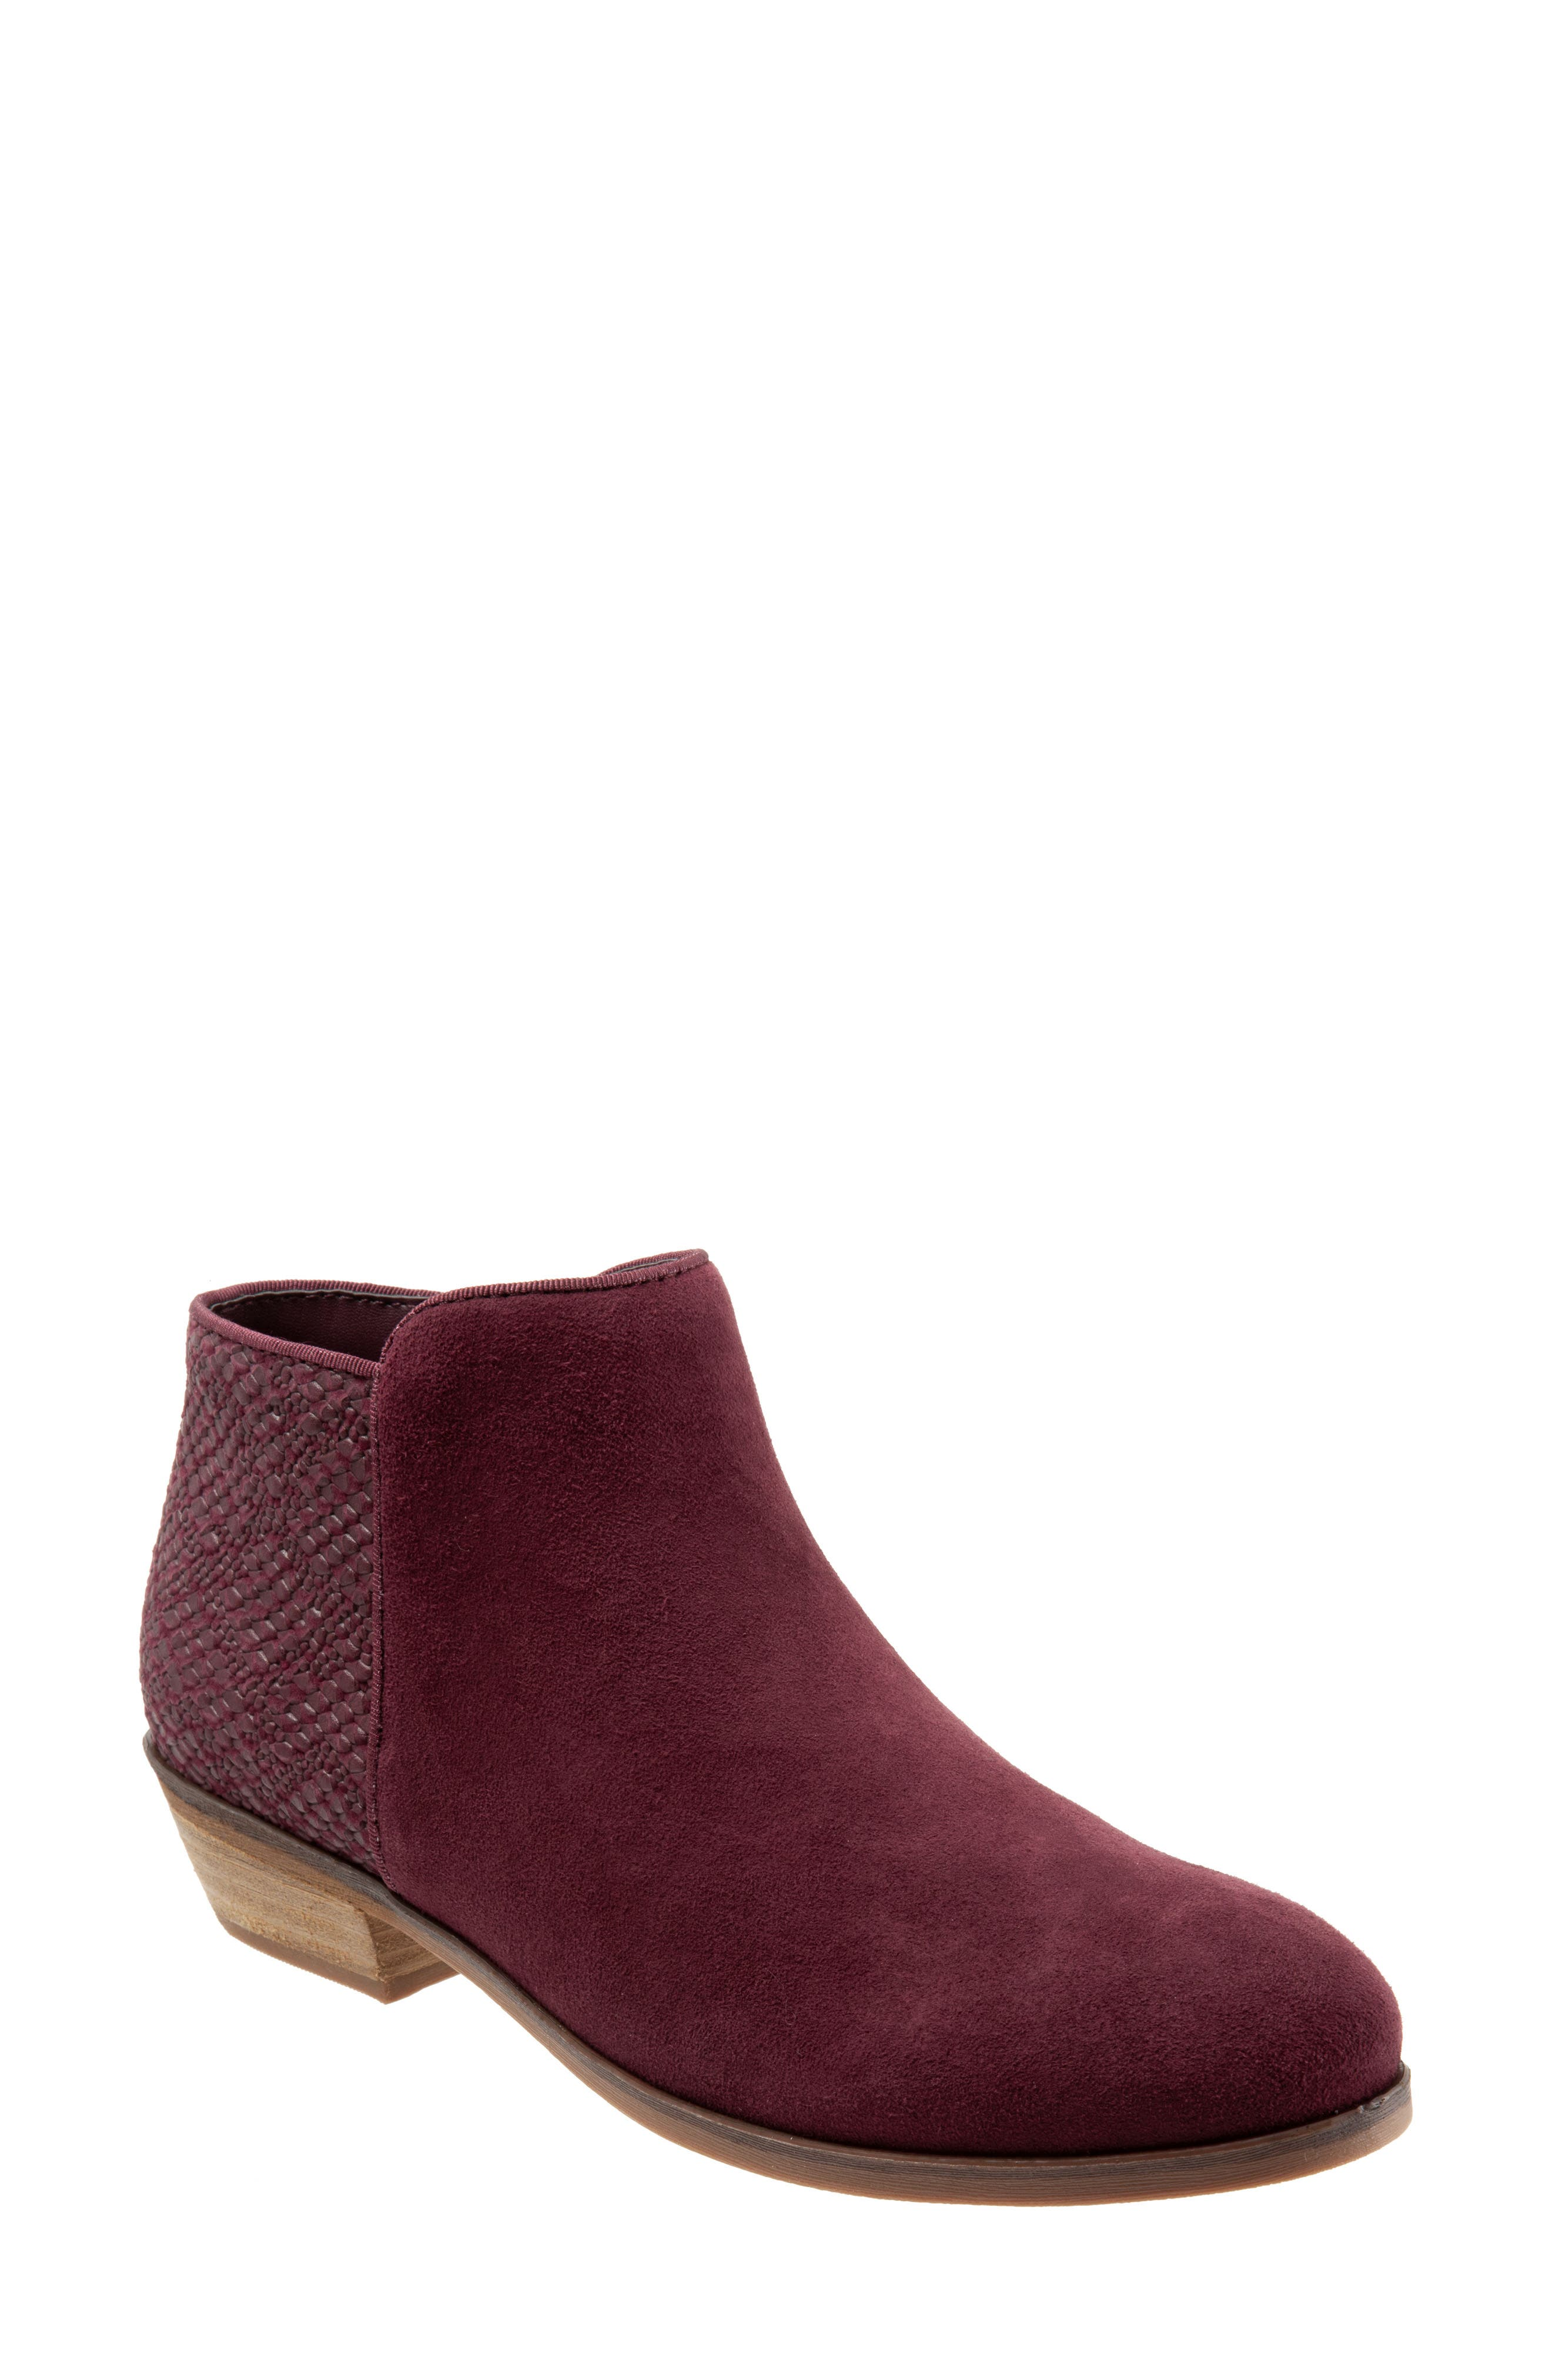 SOFTWALK<SUP>®</SUP>, 'Rocklin' Bootie, Main thumbnail 1, color, BURGUNDY LEATHER